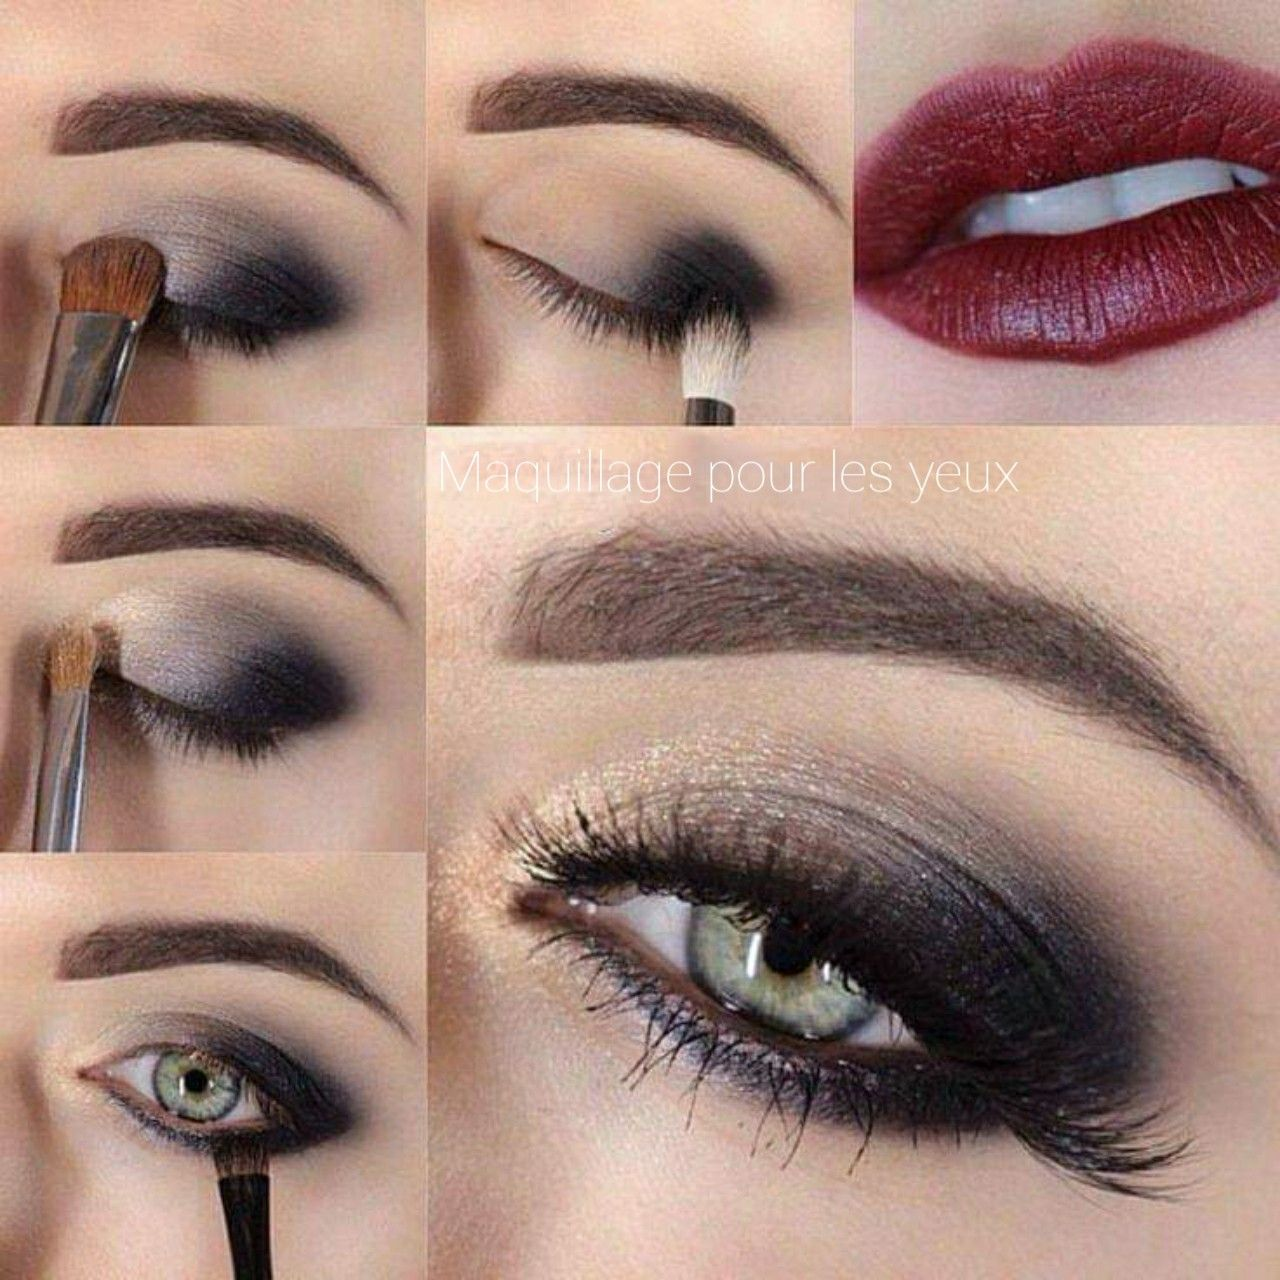 Pin By Vale Astudillo On Maquillage Des Yeux étape Par étape In 2020 Smokey Eye Makeup Smokey Eye Makeup Tutorial Evening Makeup